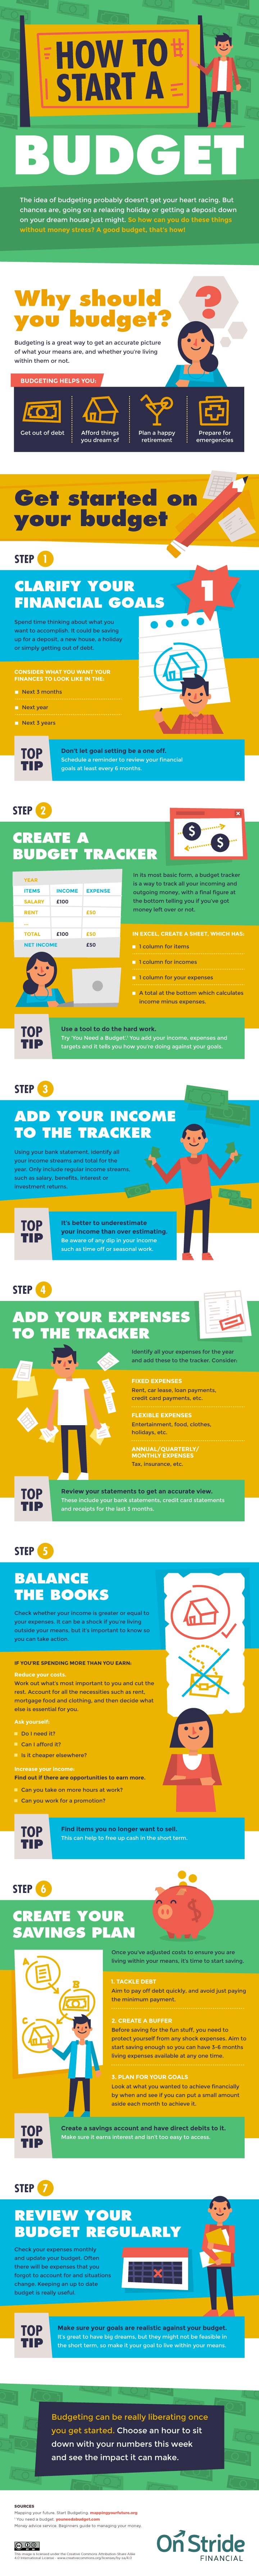 How to Start a Budget #Infographic